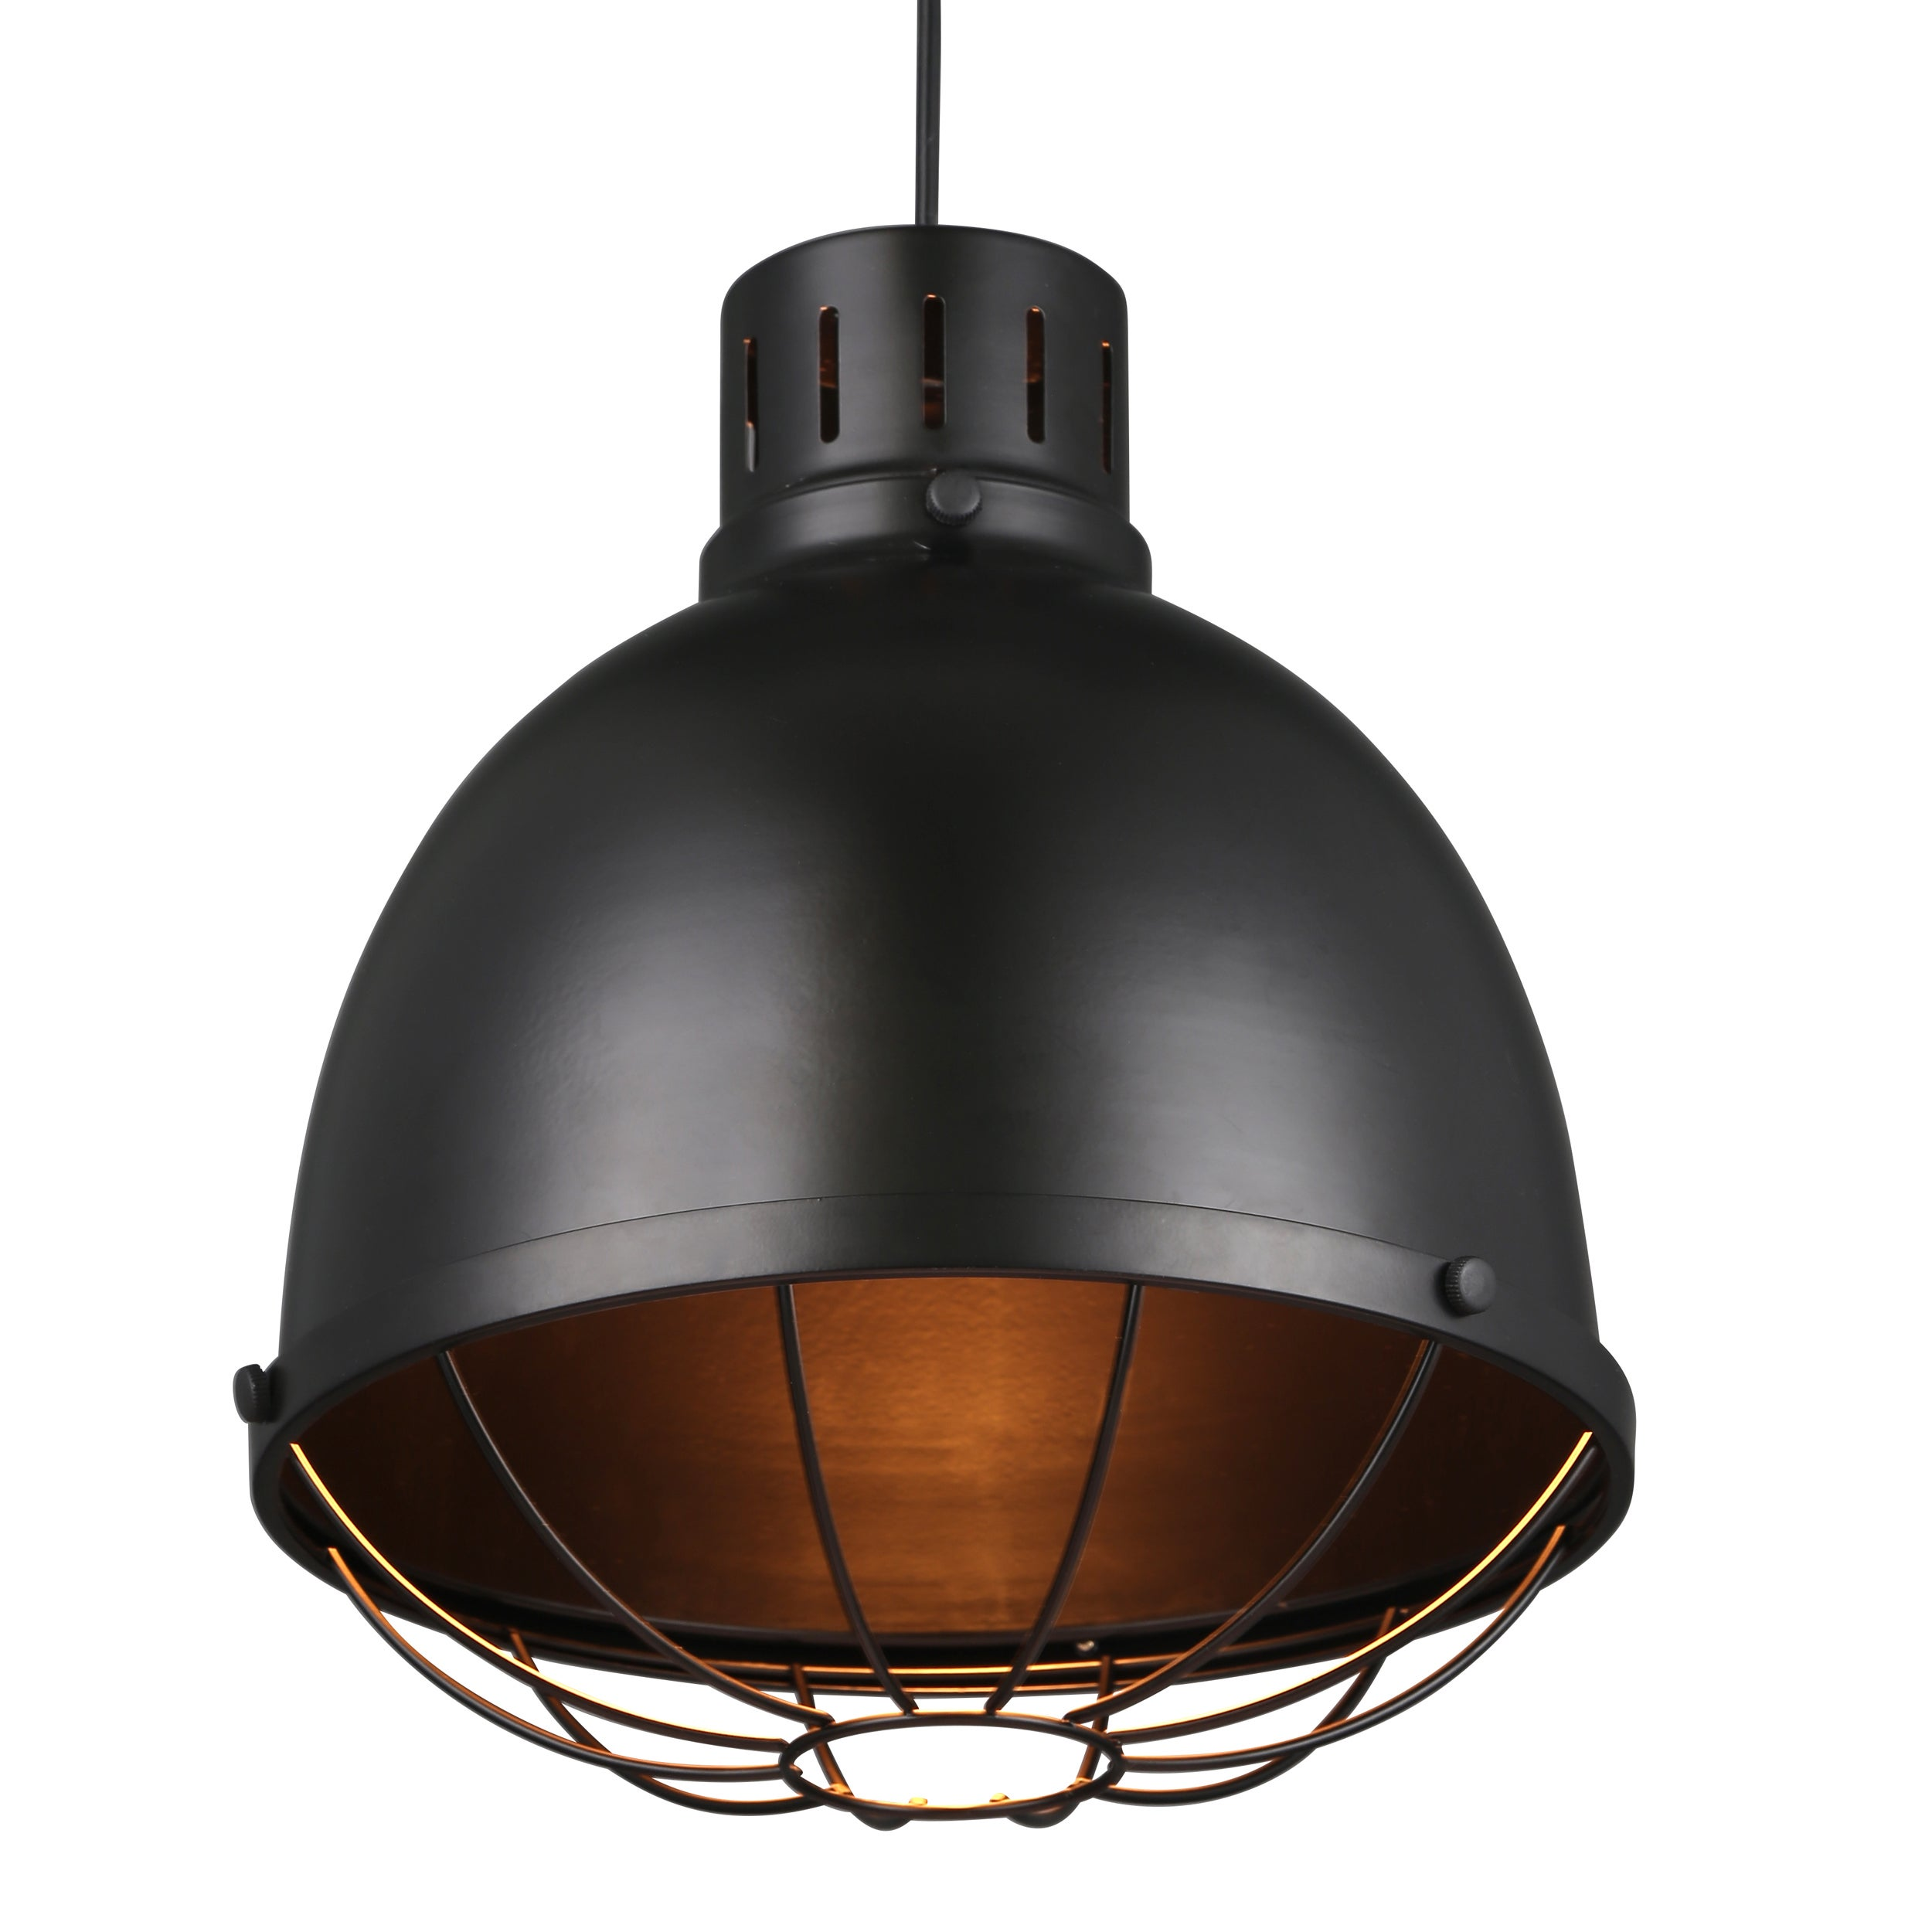 journee lighting. Journee-Home-039-Abner-039-9-in-Copper- Journee Lighting N